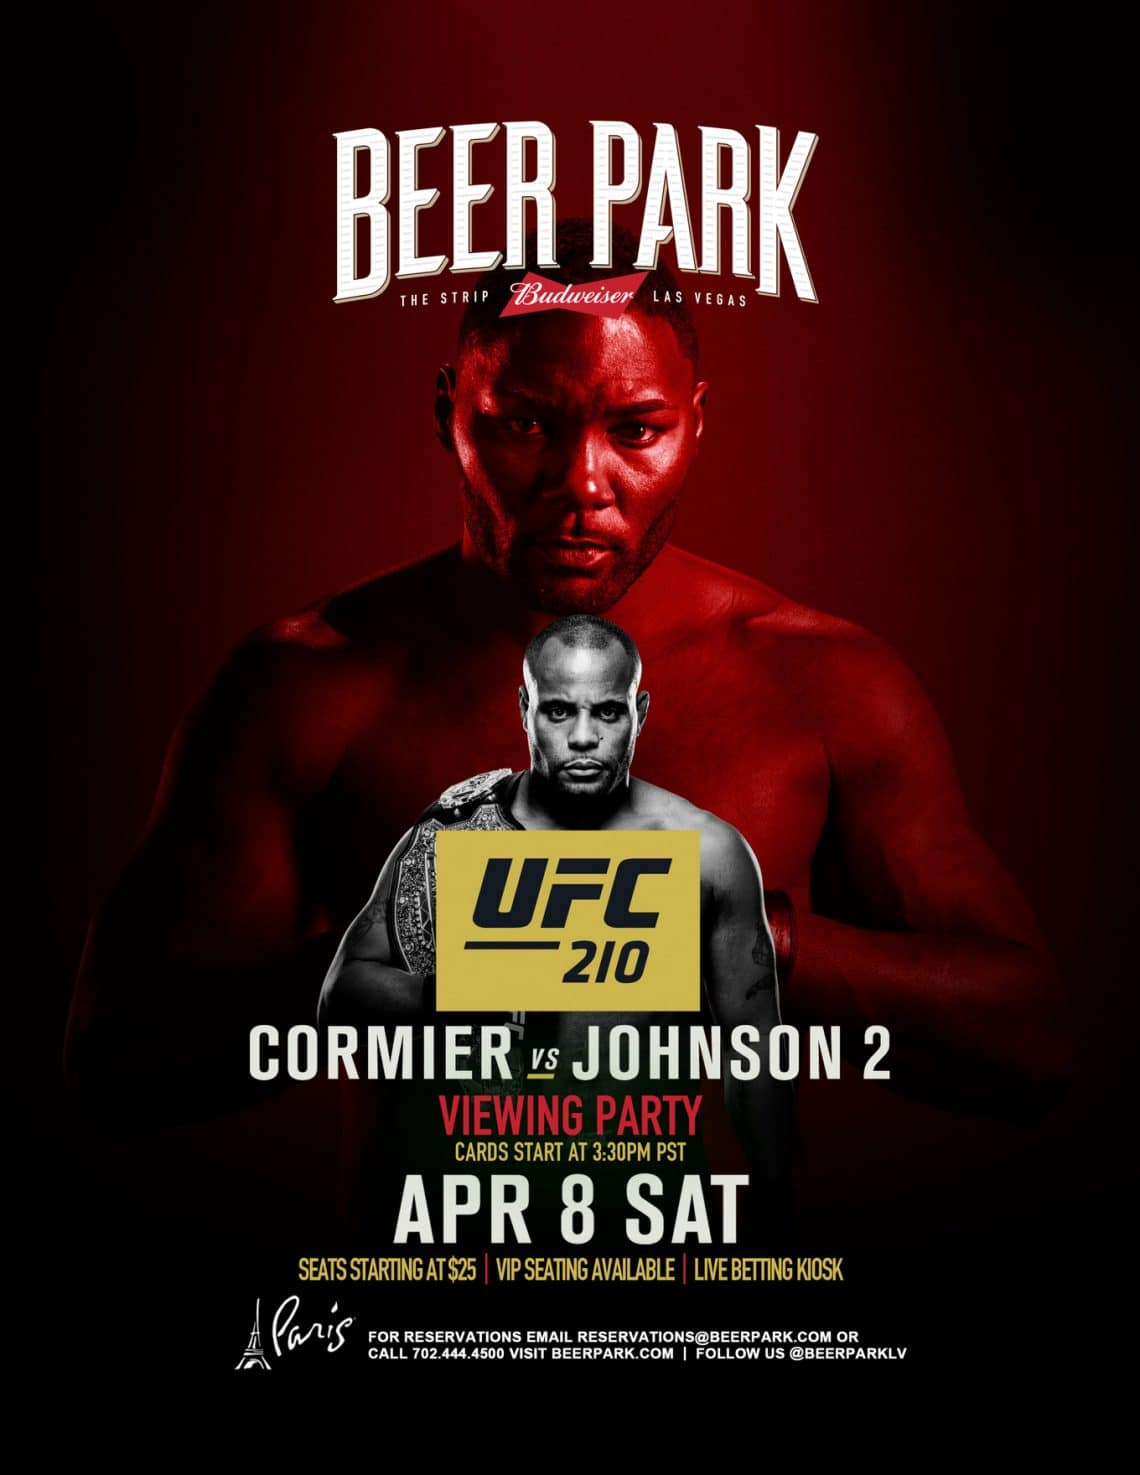 UFC 210: Cormier vs. Johnson 2 1